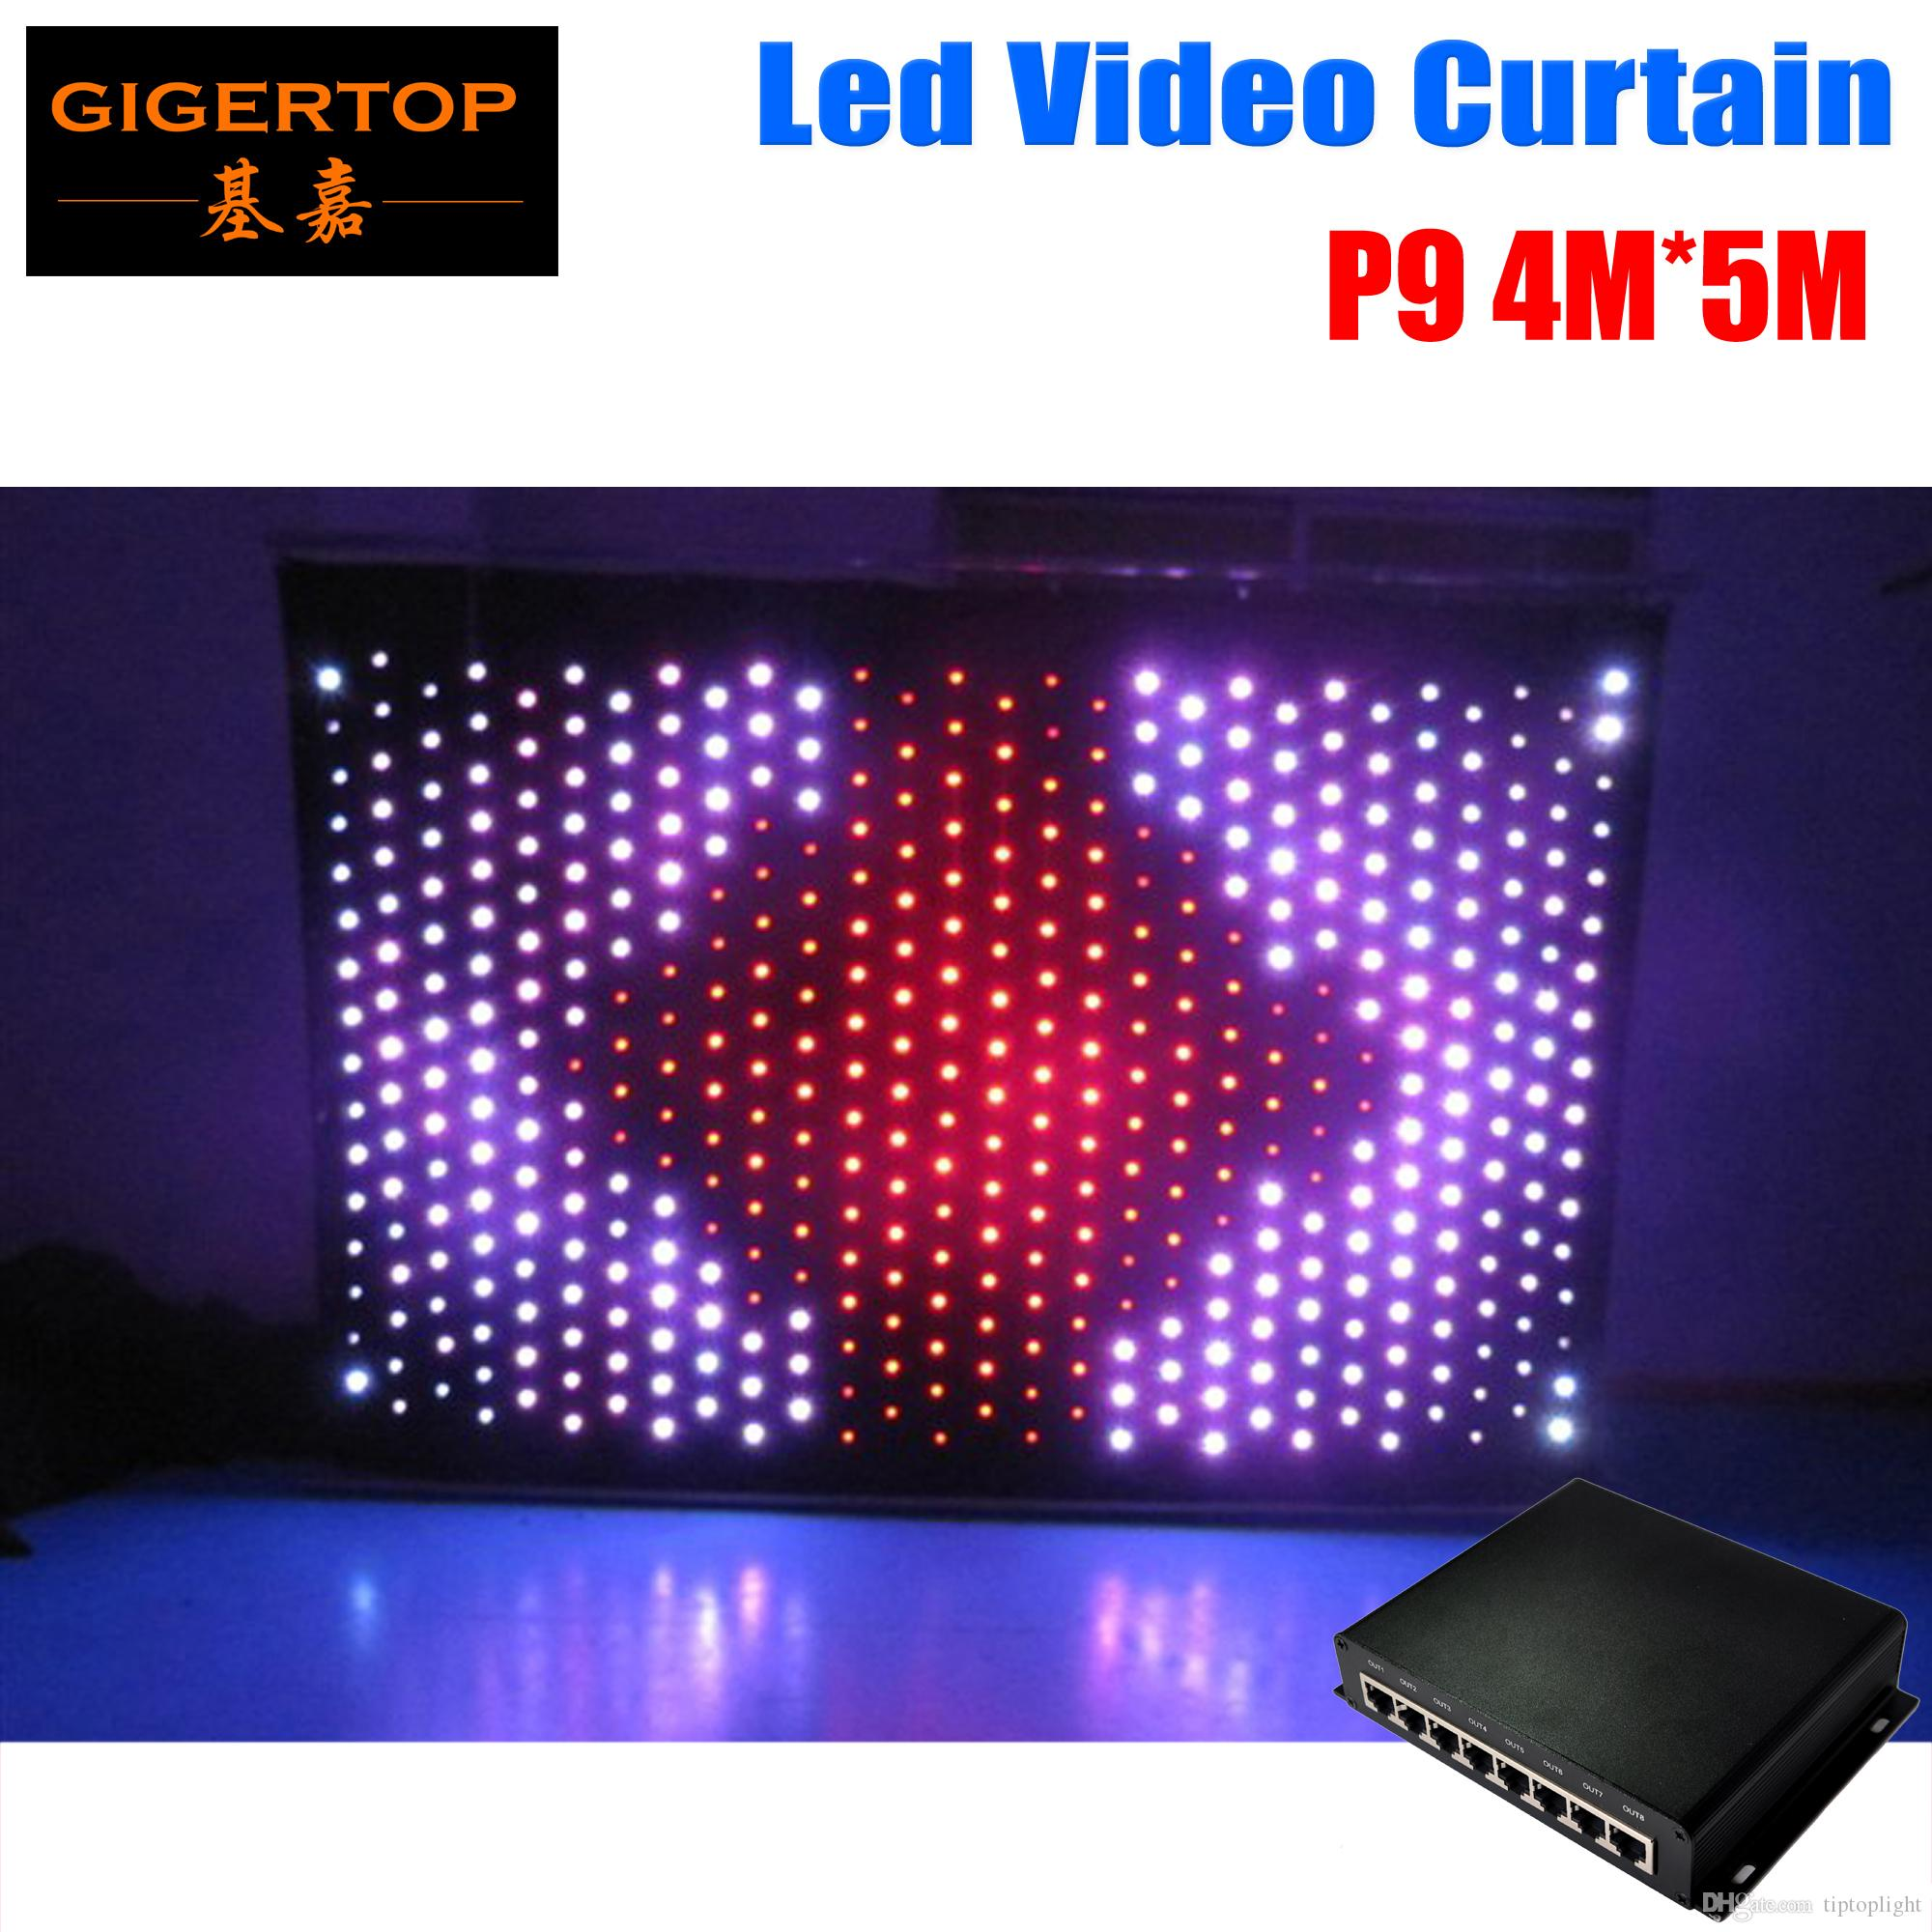 P9 4m*5m Pc Mode Led Video Curtain Dj Stage Background With Online Pc Dmx Video Curtain Controller Wedding Backdrops Stage Led Led Stage Lighting Packages ...  sc 1 st  DHgate.com & P9 4m*5m Pc Mode Led Video Curtain Dj Stage Background With Online ... azcodes.com